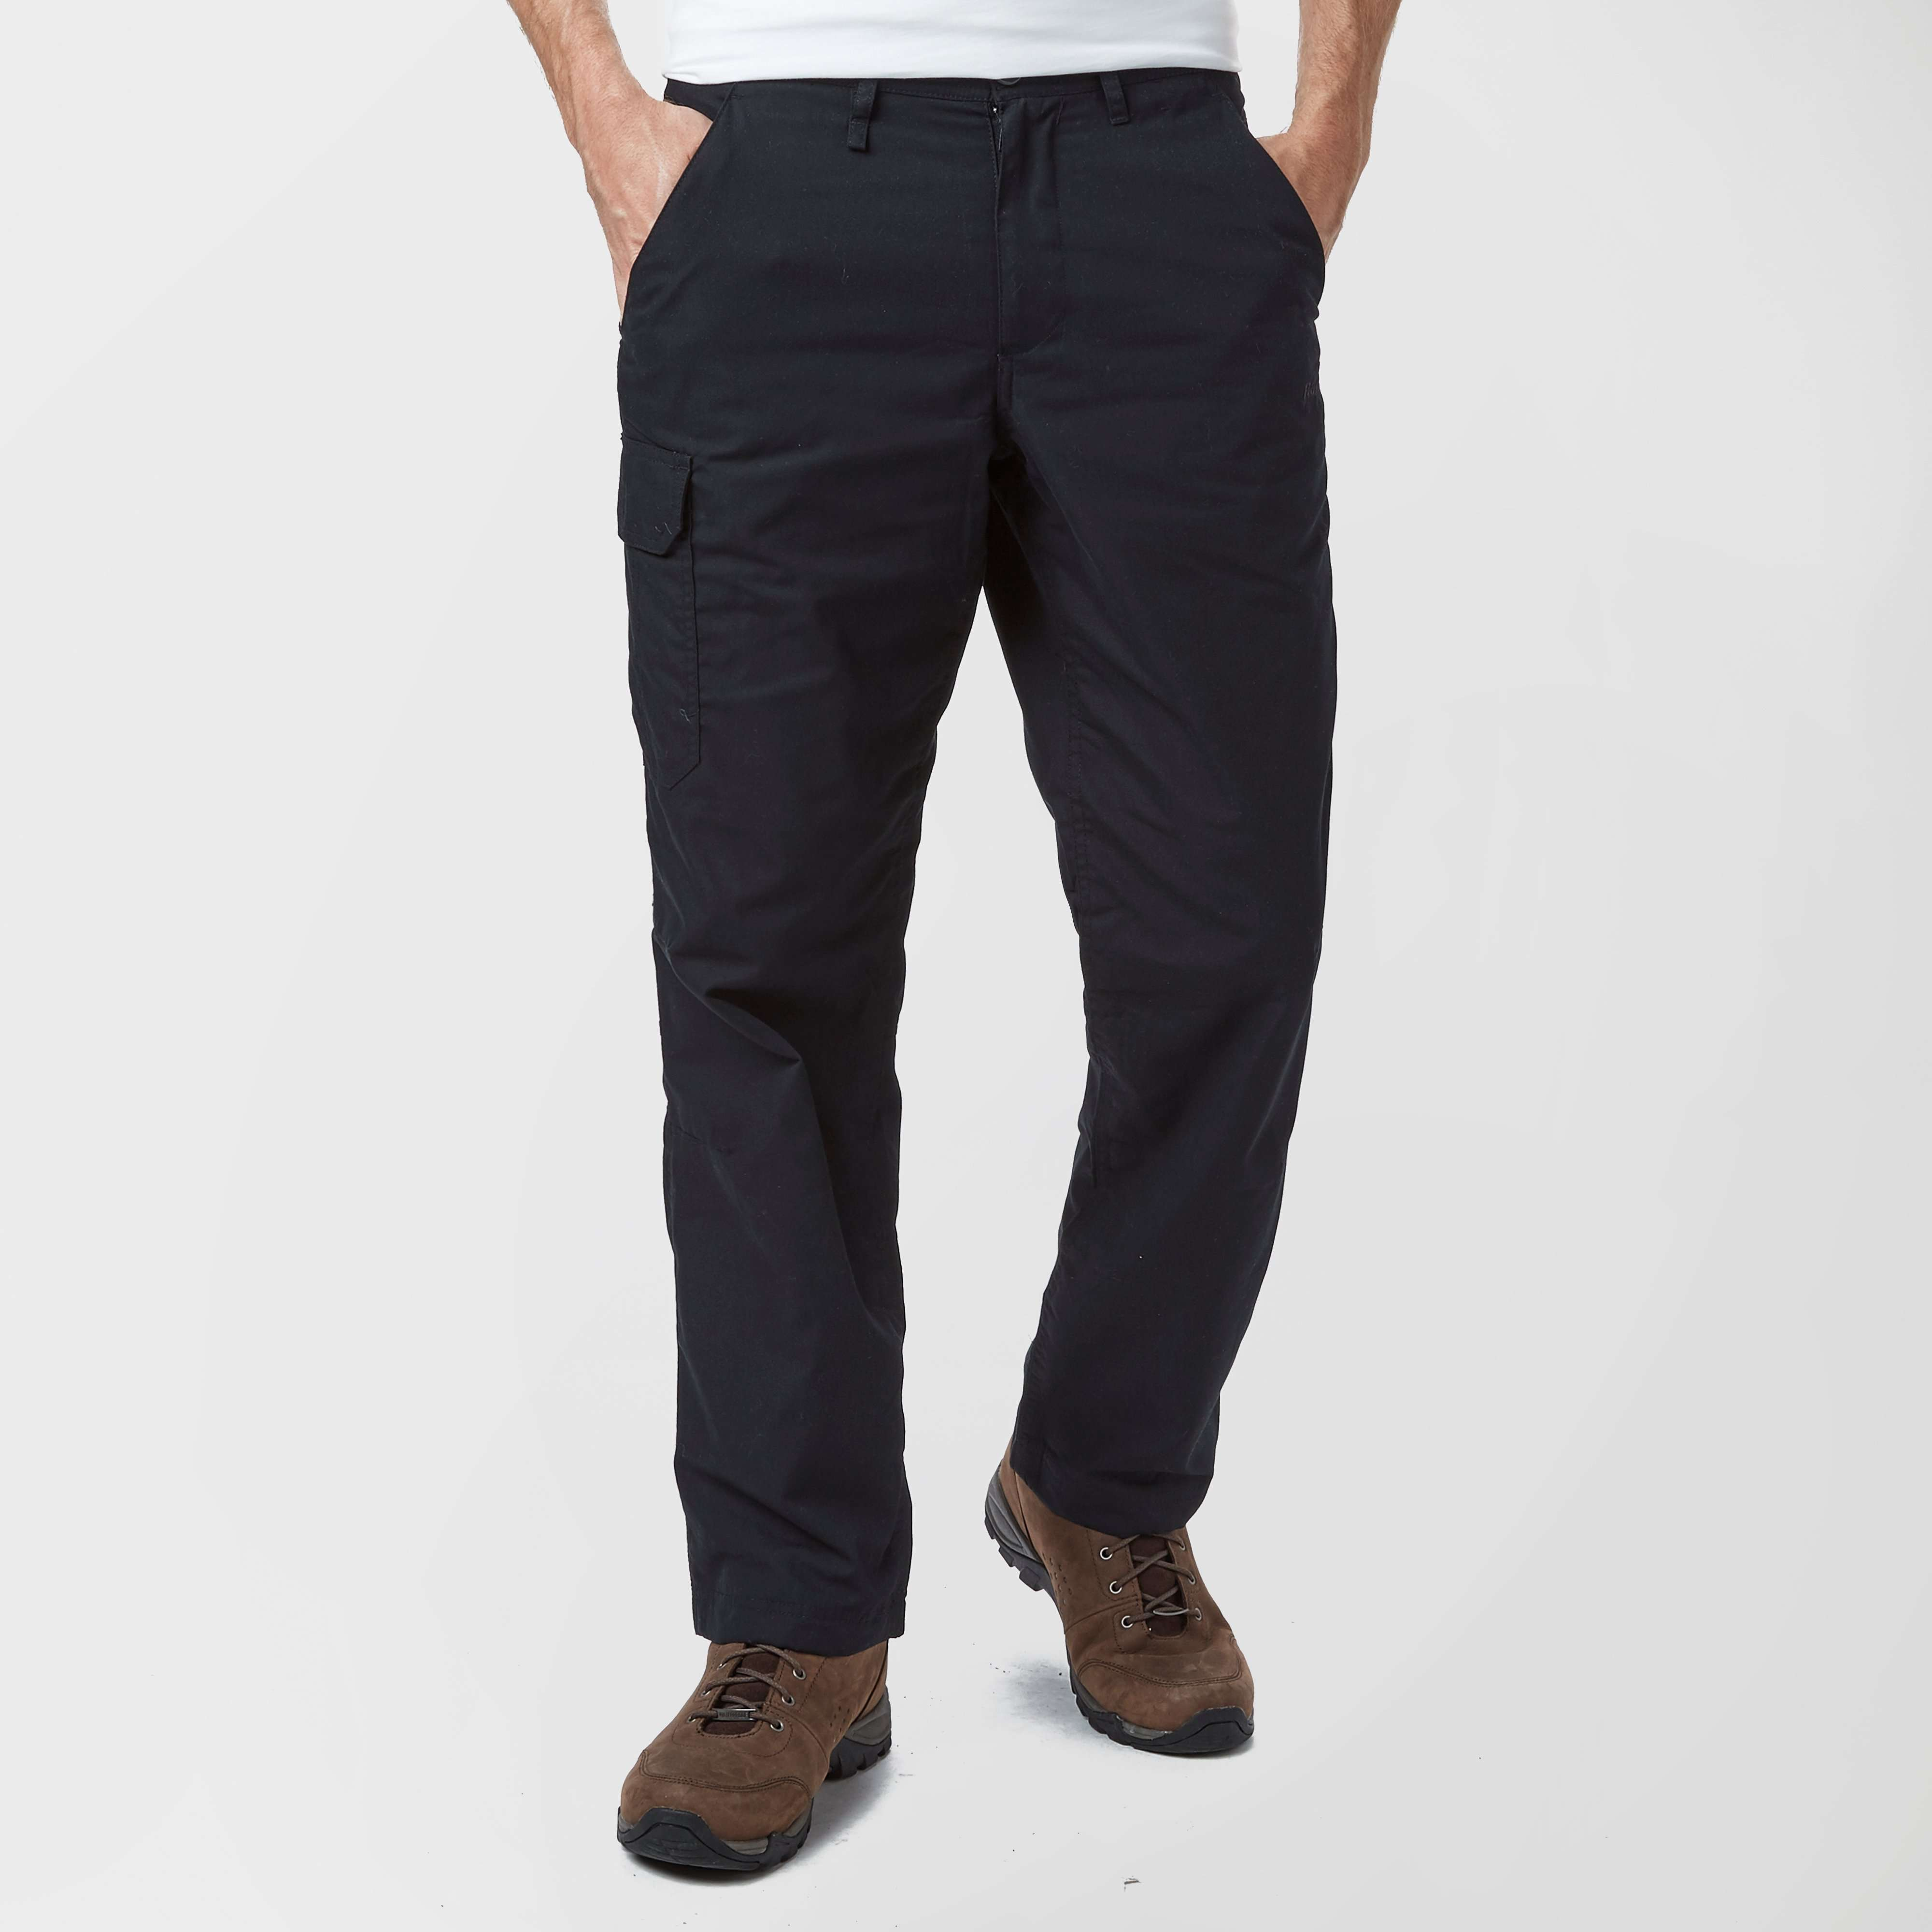 PETER STORM Men's Ramble II Lined Trousers